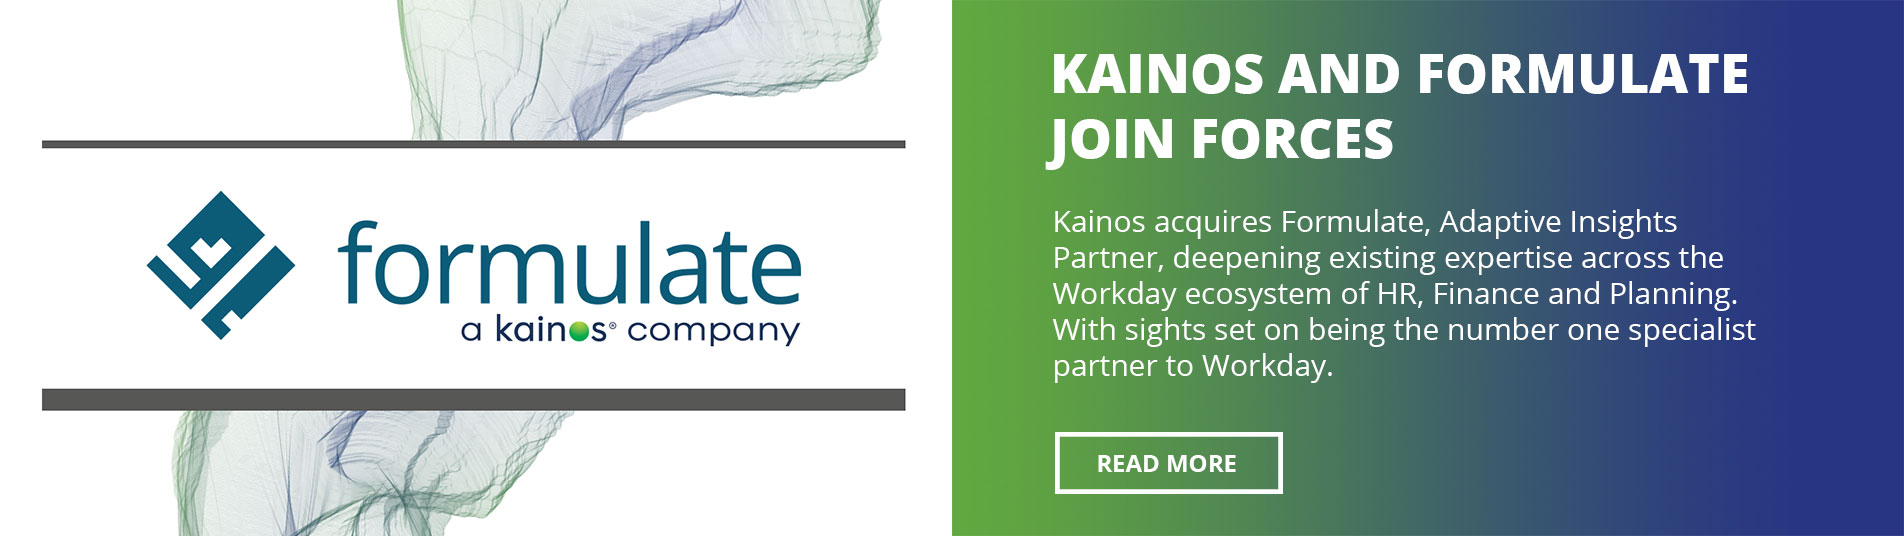 Kainos-And-Formulate-Join-Forces